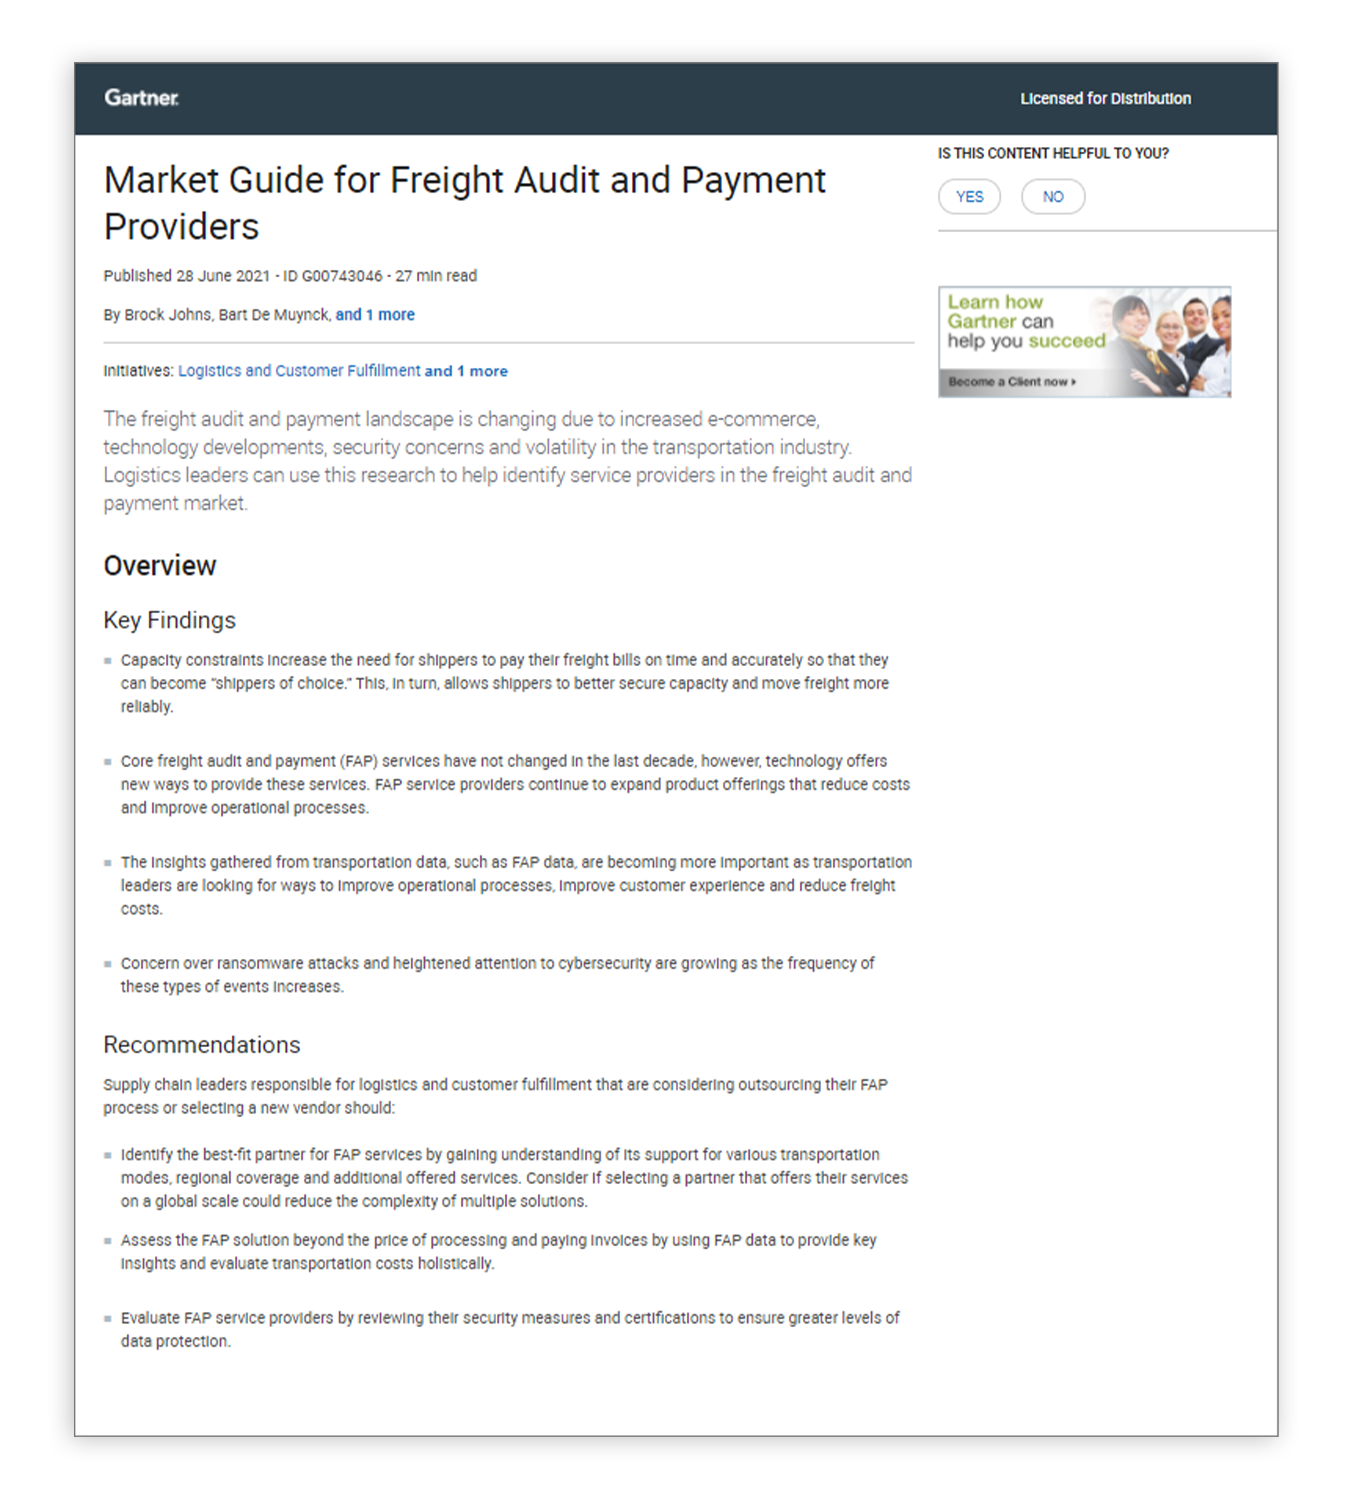 Market Guide for Freight Audit and Payment Providers Cover